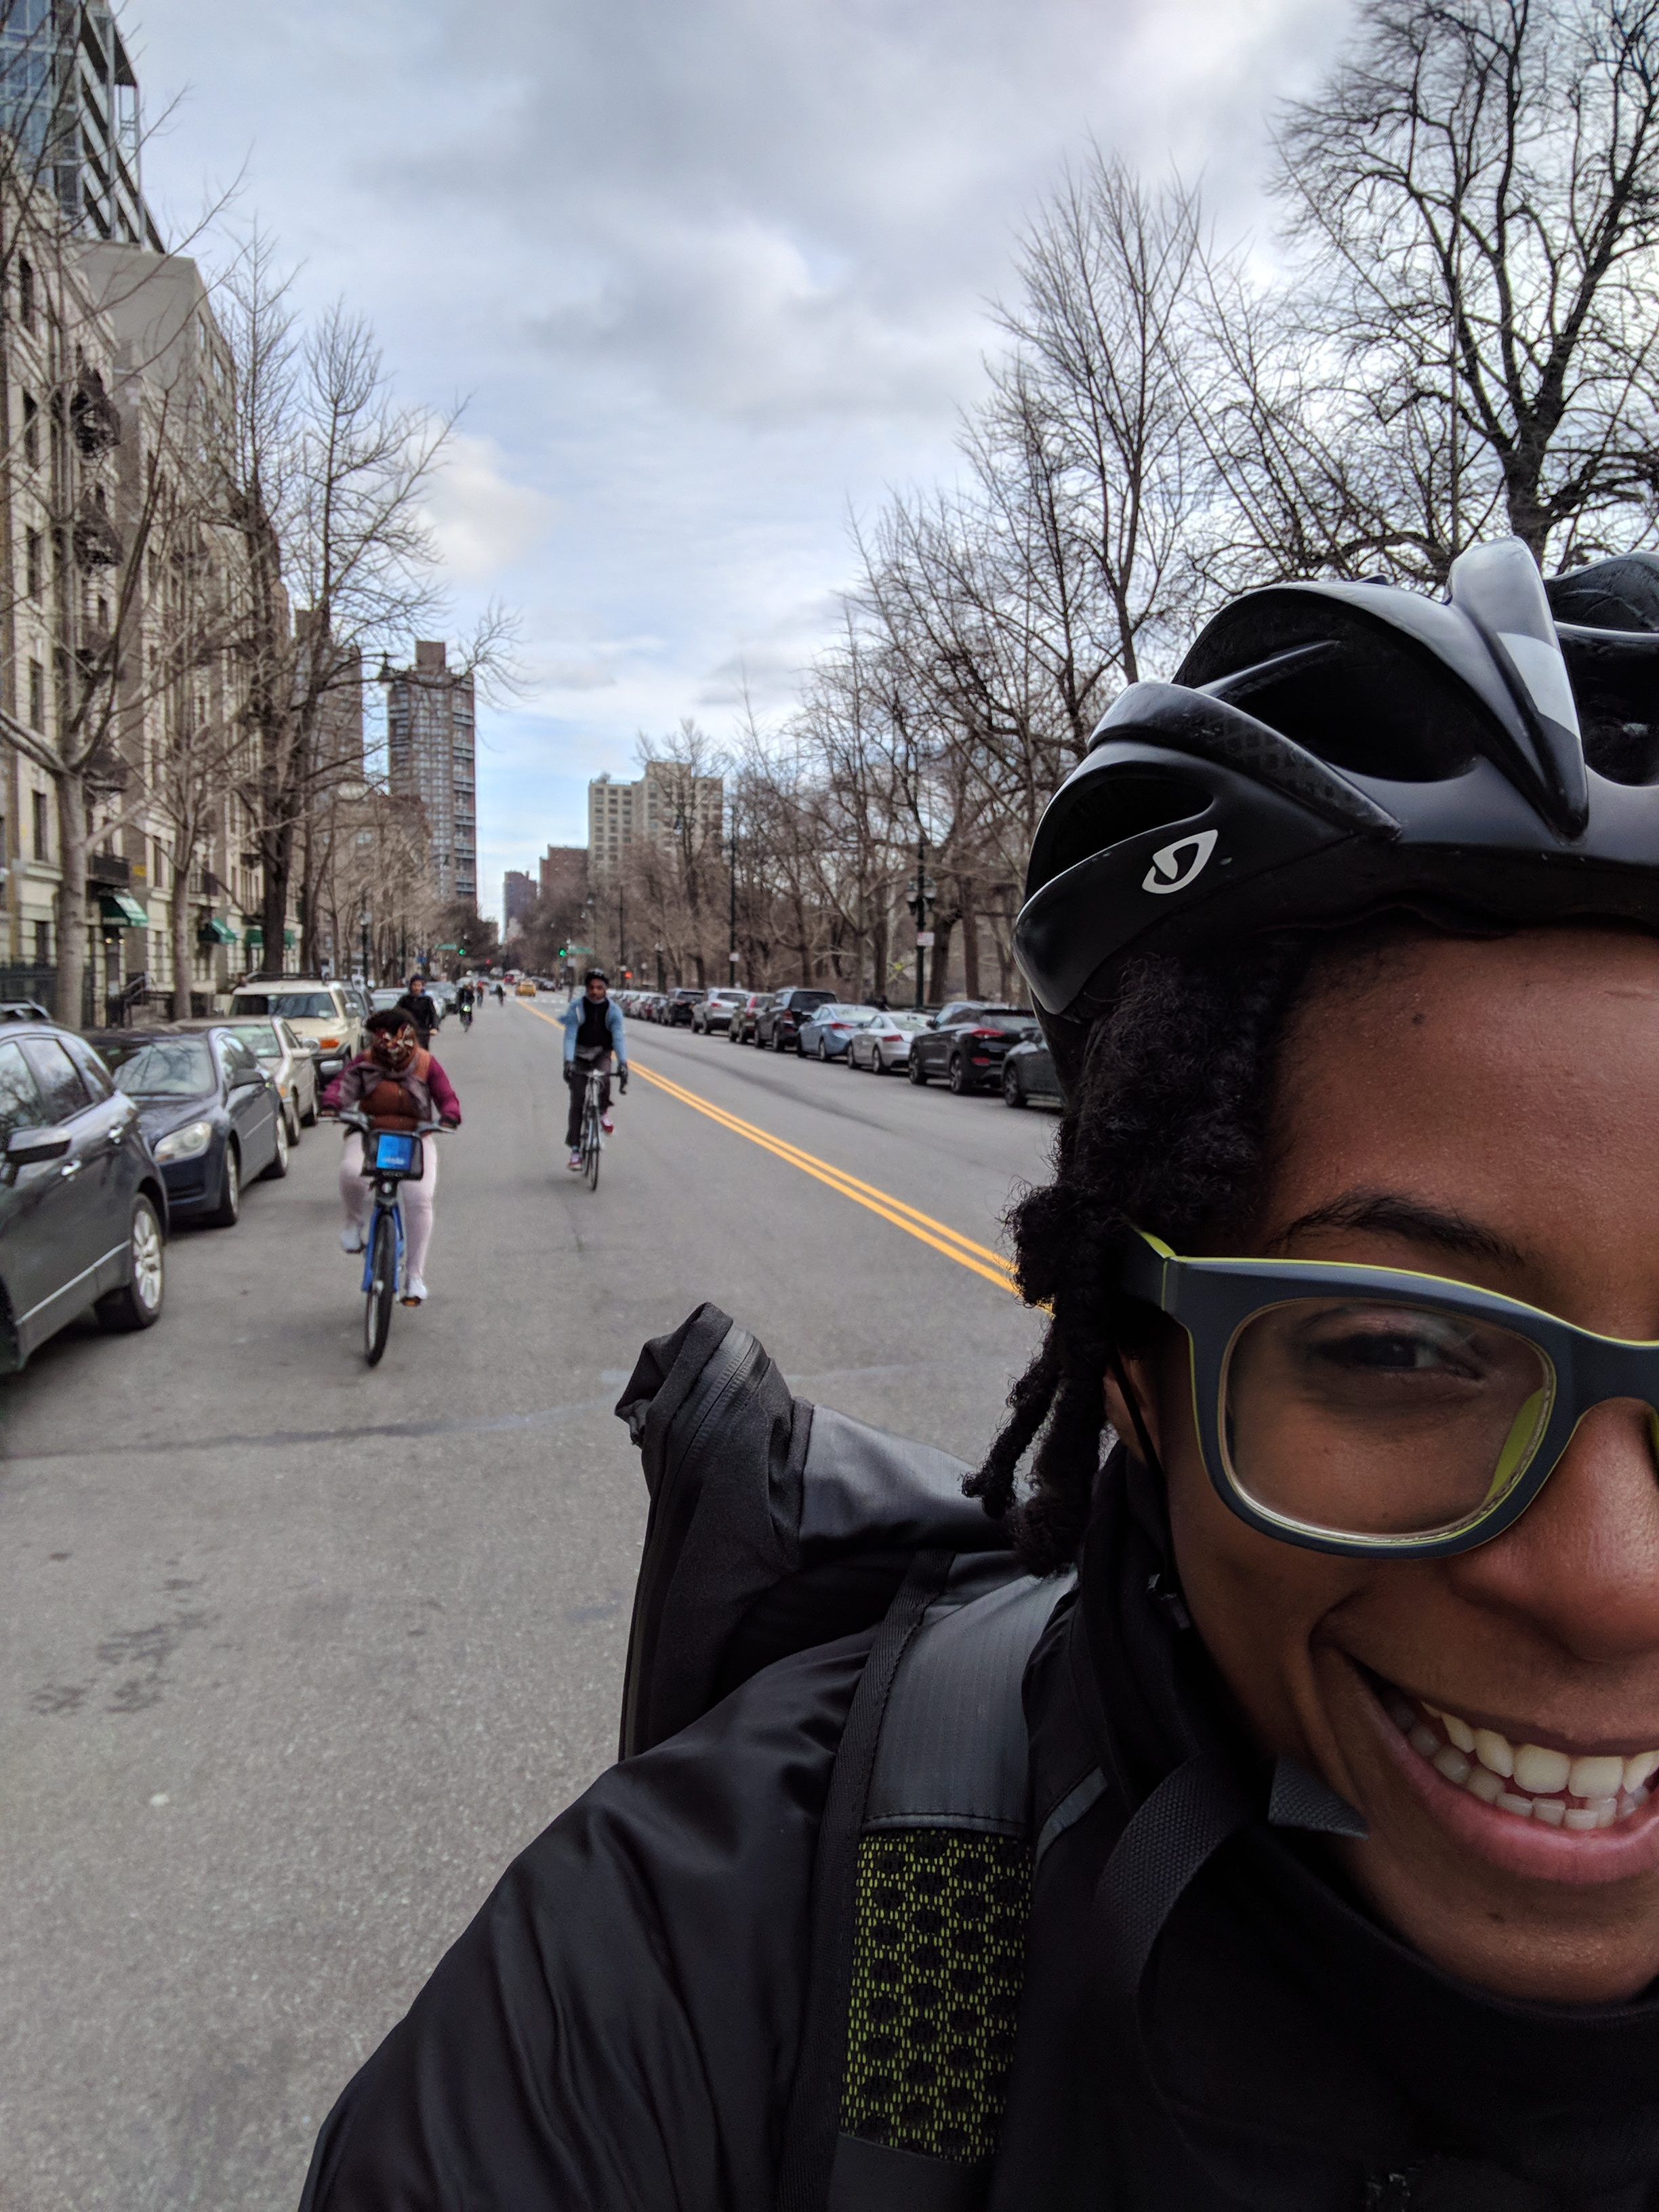 Lydia mooretour co-lead - Lydia's passion for bicycles began in 2006 when their grandmother gave them a bicycle that was won in a grocery store contest. Since then, they have adventured and commuted on many different bicycles across thousands of miles around California, Chicago, Detroit, NYC, Philadelphia, and Portland. In 2014, Lydia received a Bicycle Technician Certification from United Bicycle Institute, and began their career in the bike industry. In 2017, Lydia joined Different Gear, a Brooklyn based ride series for QTPOC, and began organizing and leading QTPOC centered bike rides around NYC. Lydia has taught workshops and classes about all things bicycles; currently works as the Service Manager at Trek Bikes Chelsea; and is also studying engineering sciences at CUNY. Lydia has never owned a car.